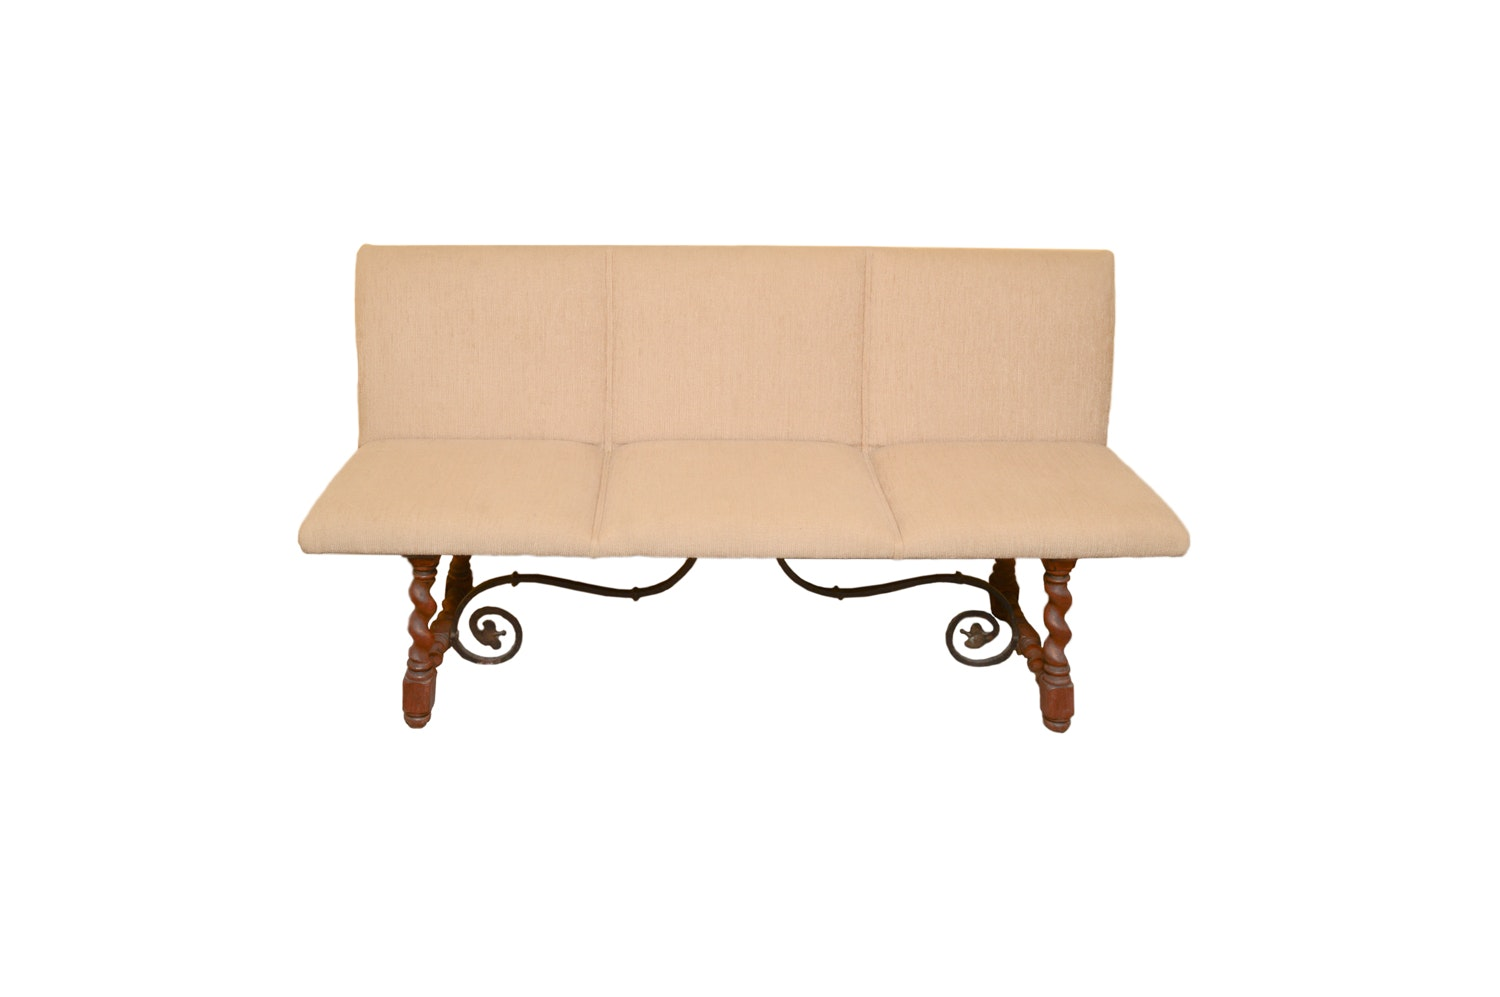 Upholstered Wood and Metal Bench, Late 20th Century